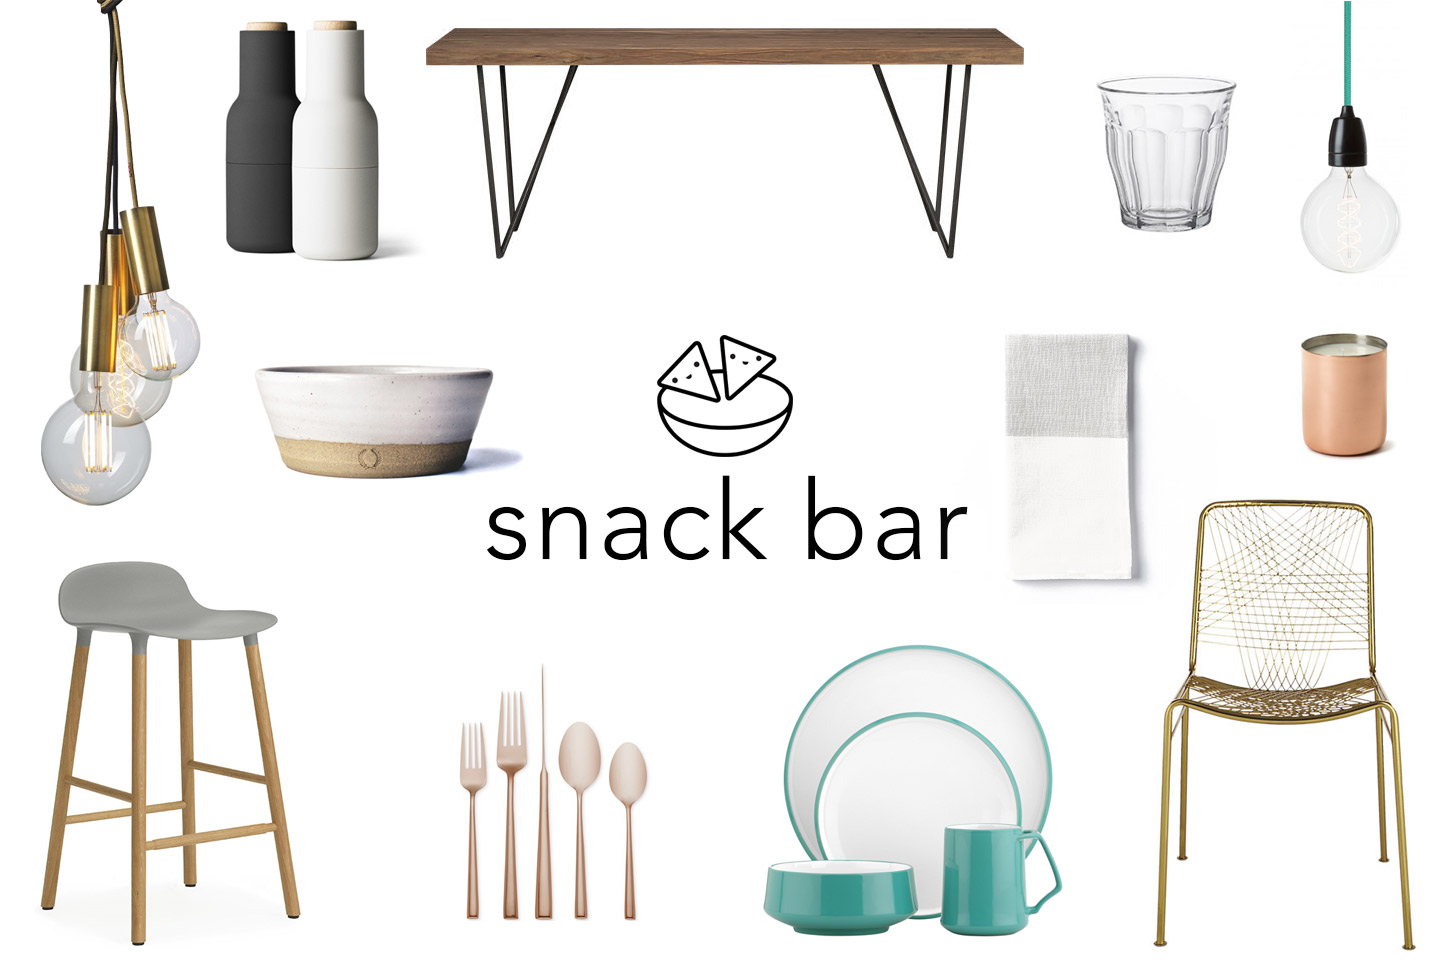 snack-bar-mood-board